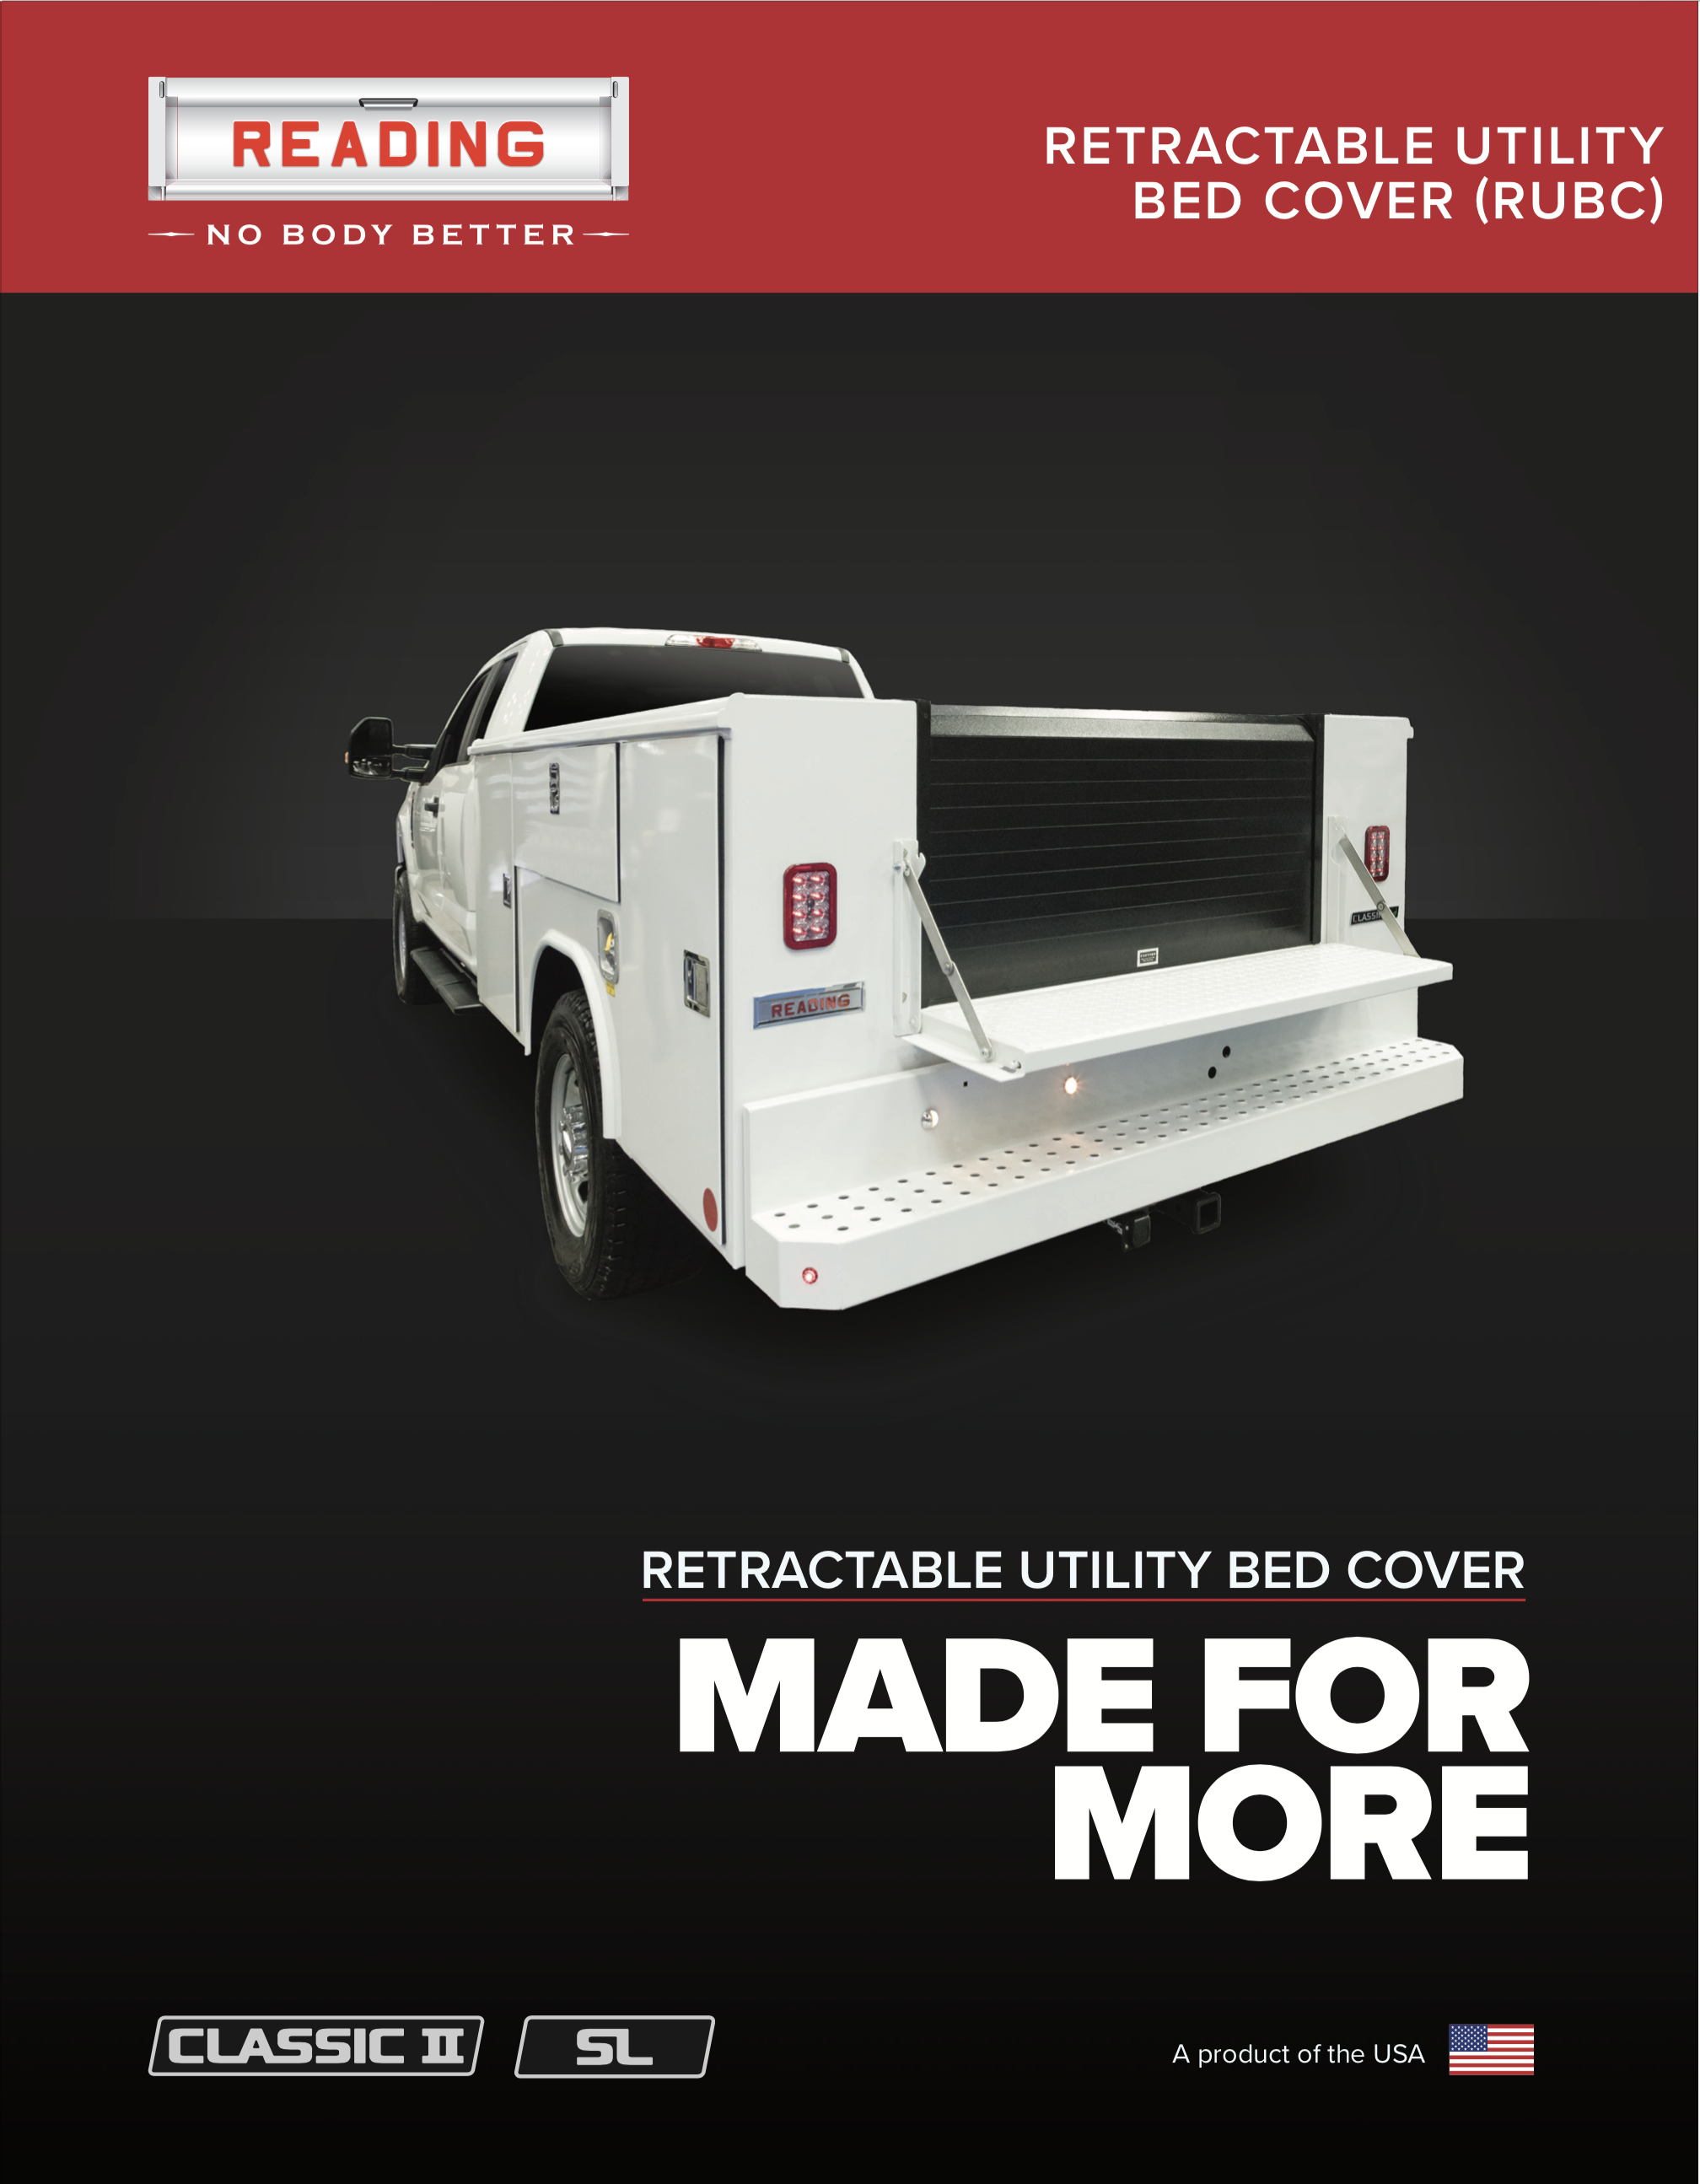 RUBC (Retractable Utility Bed Cover) Product Literature